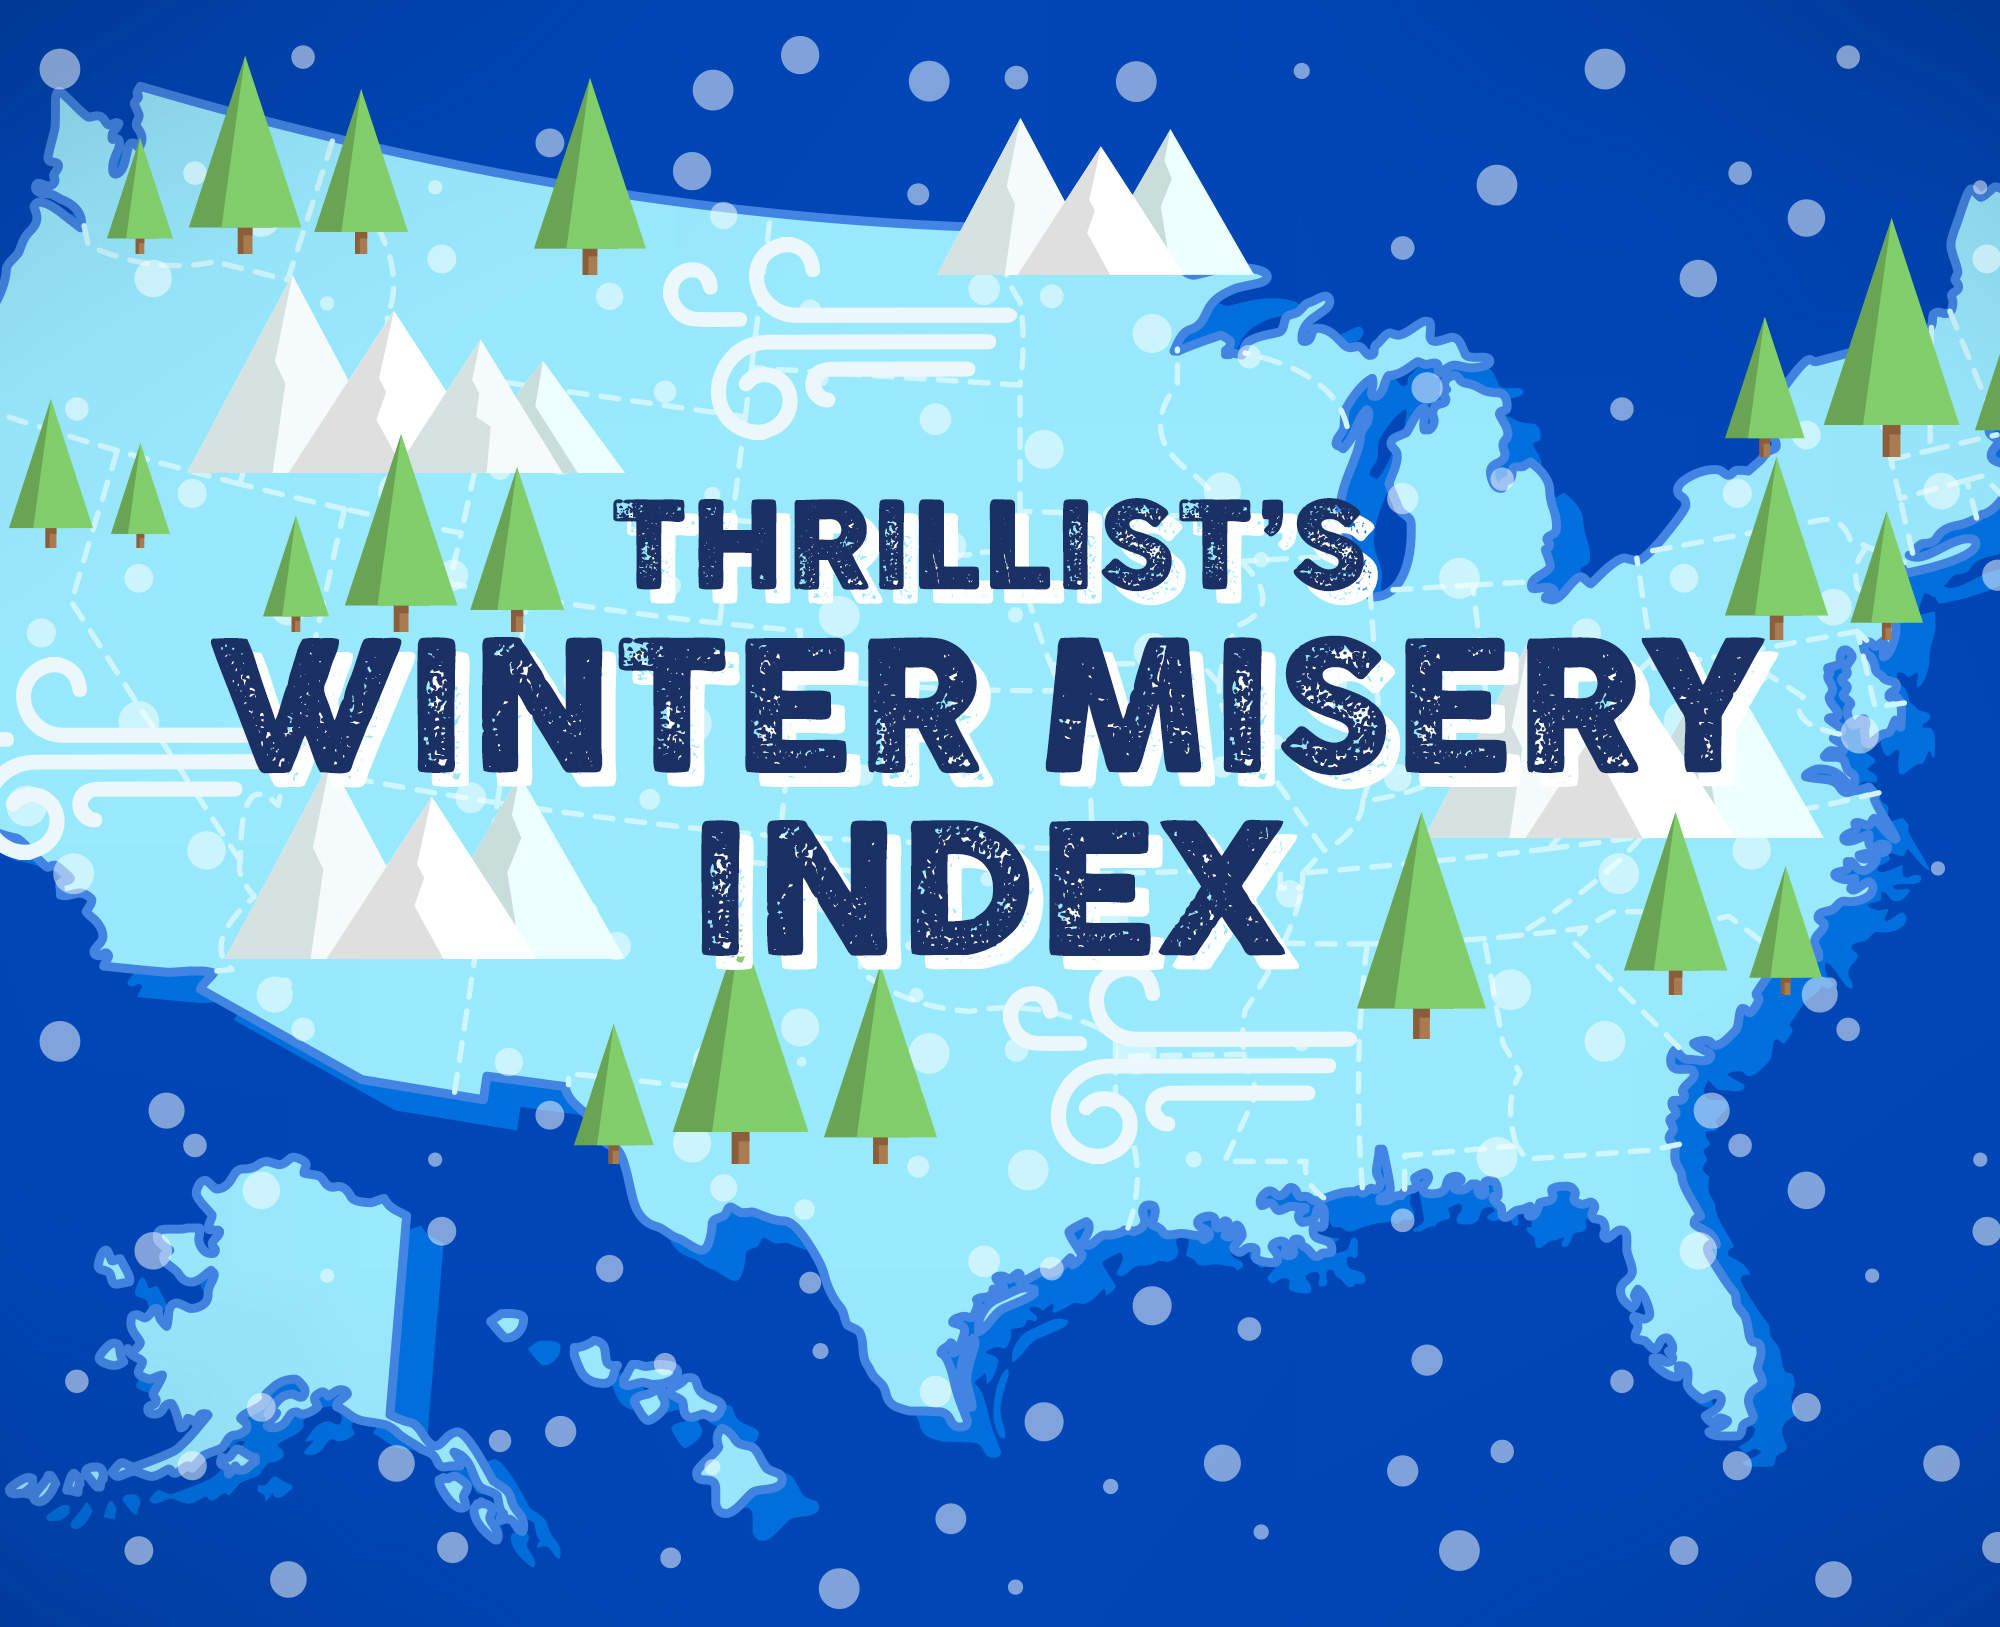 The winters of all 50 states rated for misery - North Carolina fares well as no 38 (1 is worst) ... Few states have a mountain range that acts like a shield preventing strikes of shitty Midwestern winter weather. North Carolina is one of those lucky states, giving it a relatively mild and tame winter for its placement up the coast. ... Virginia is 32, Connecticut is 19